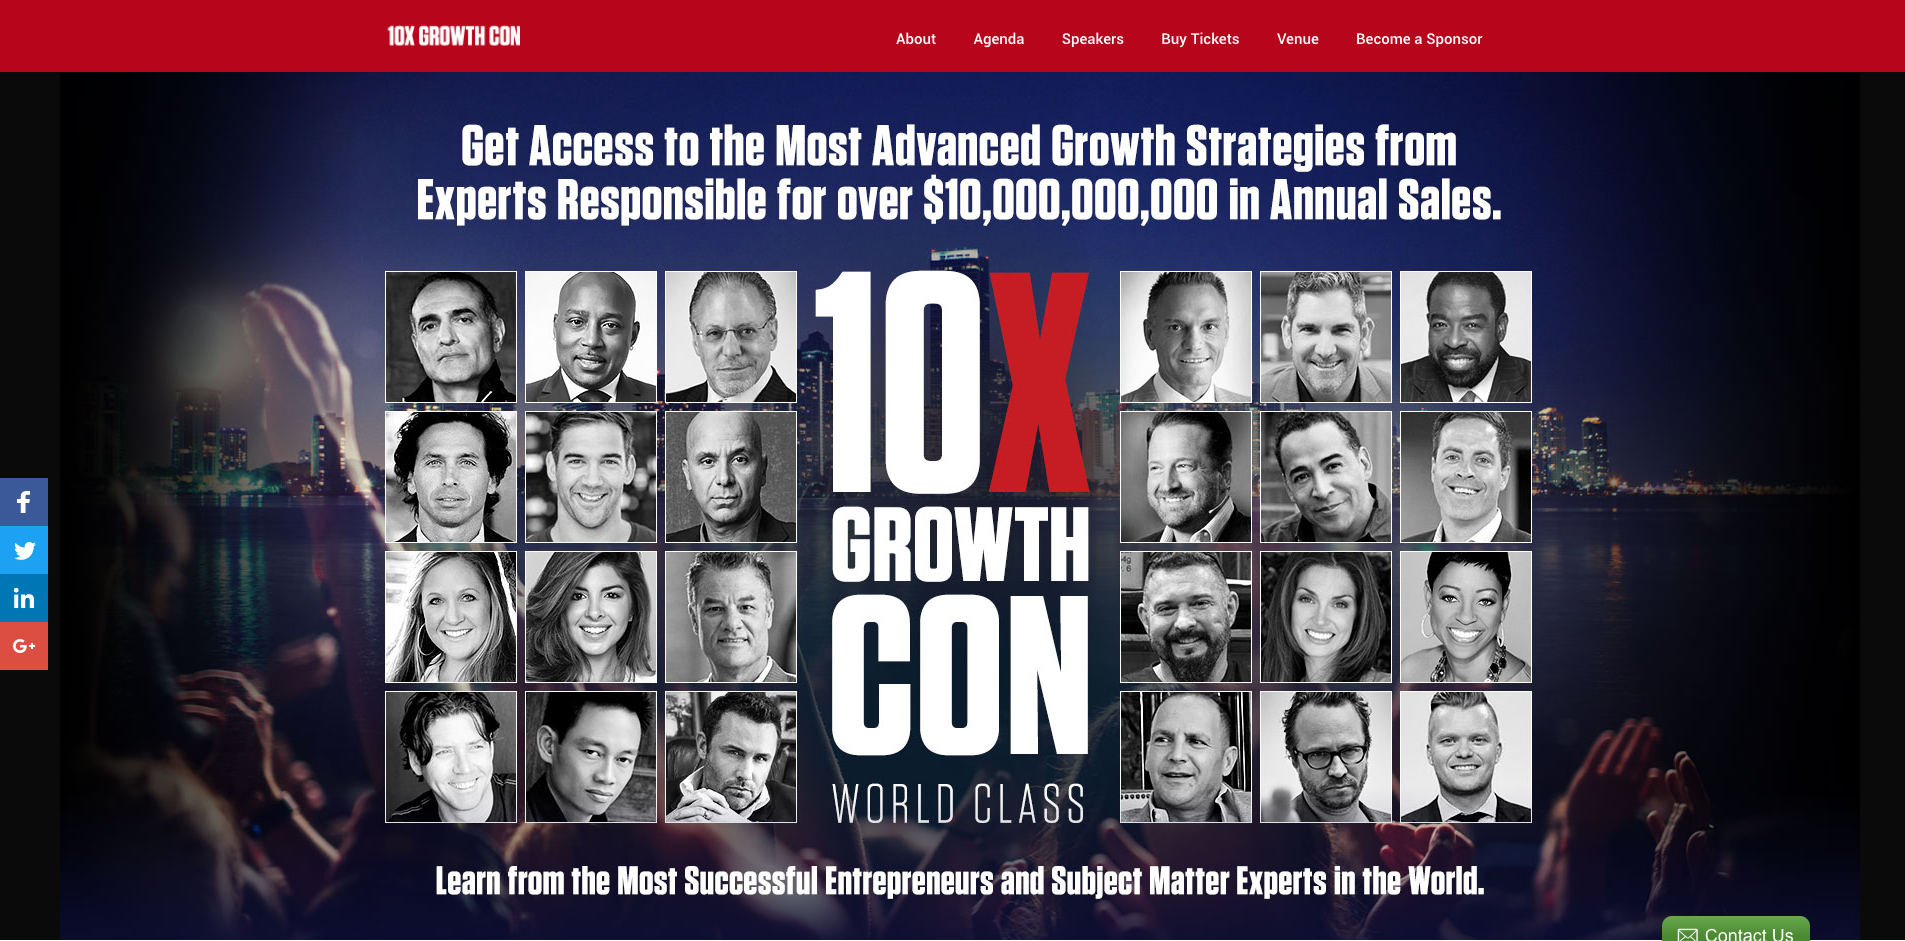 Crant Cardone's 10x Growth Conference